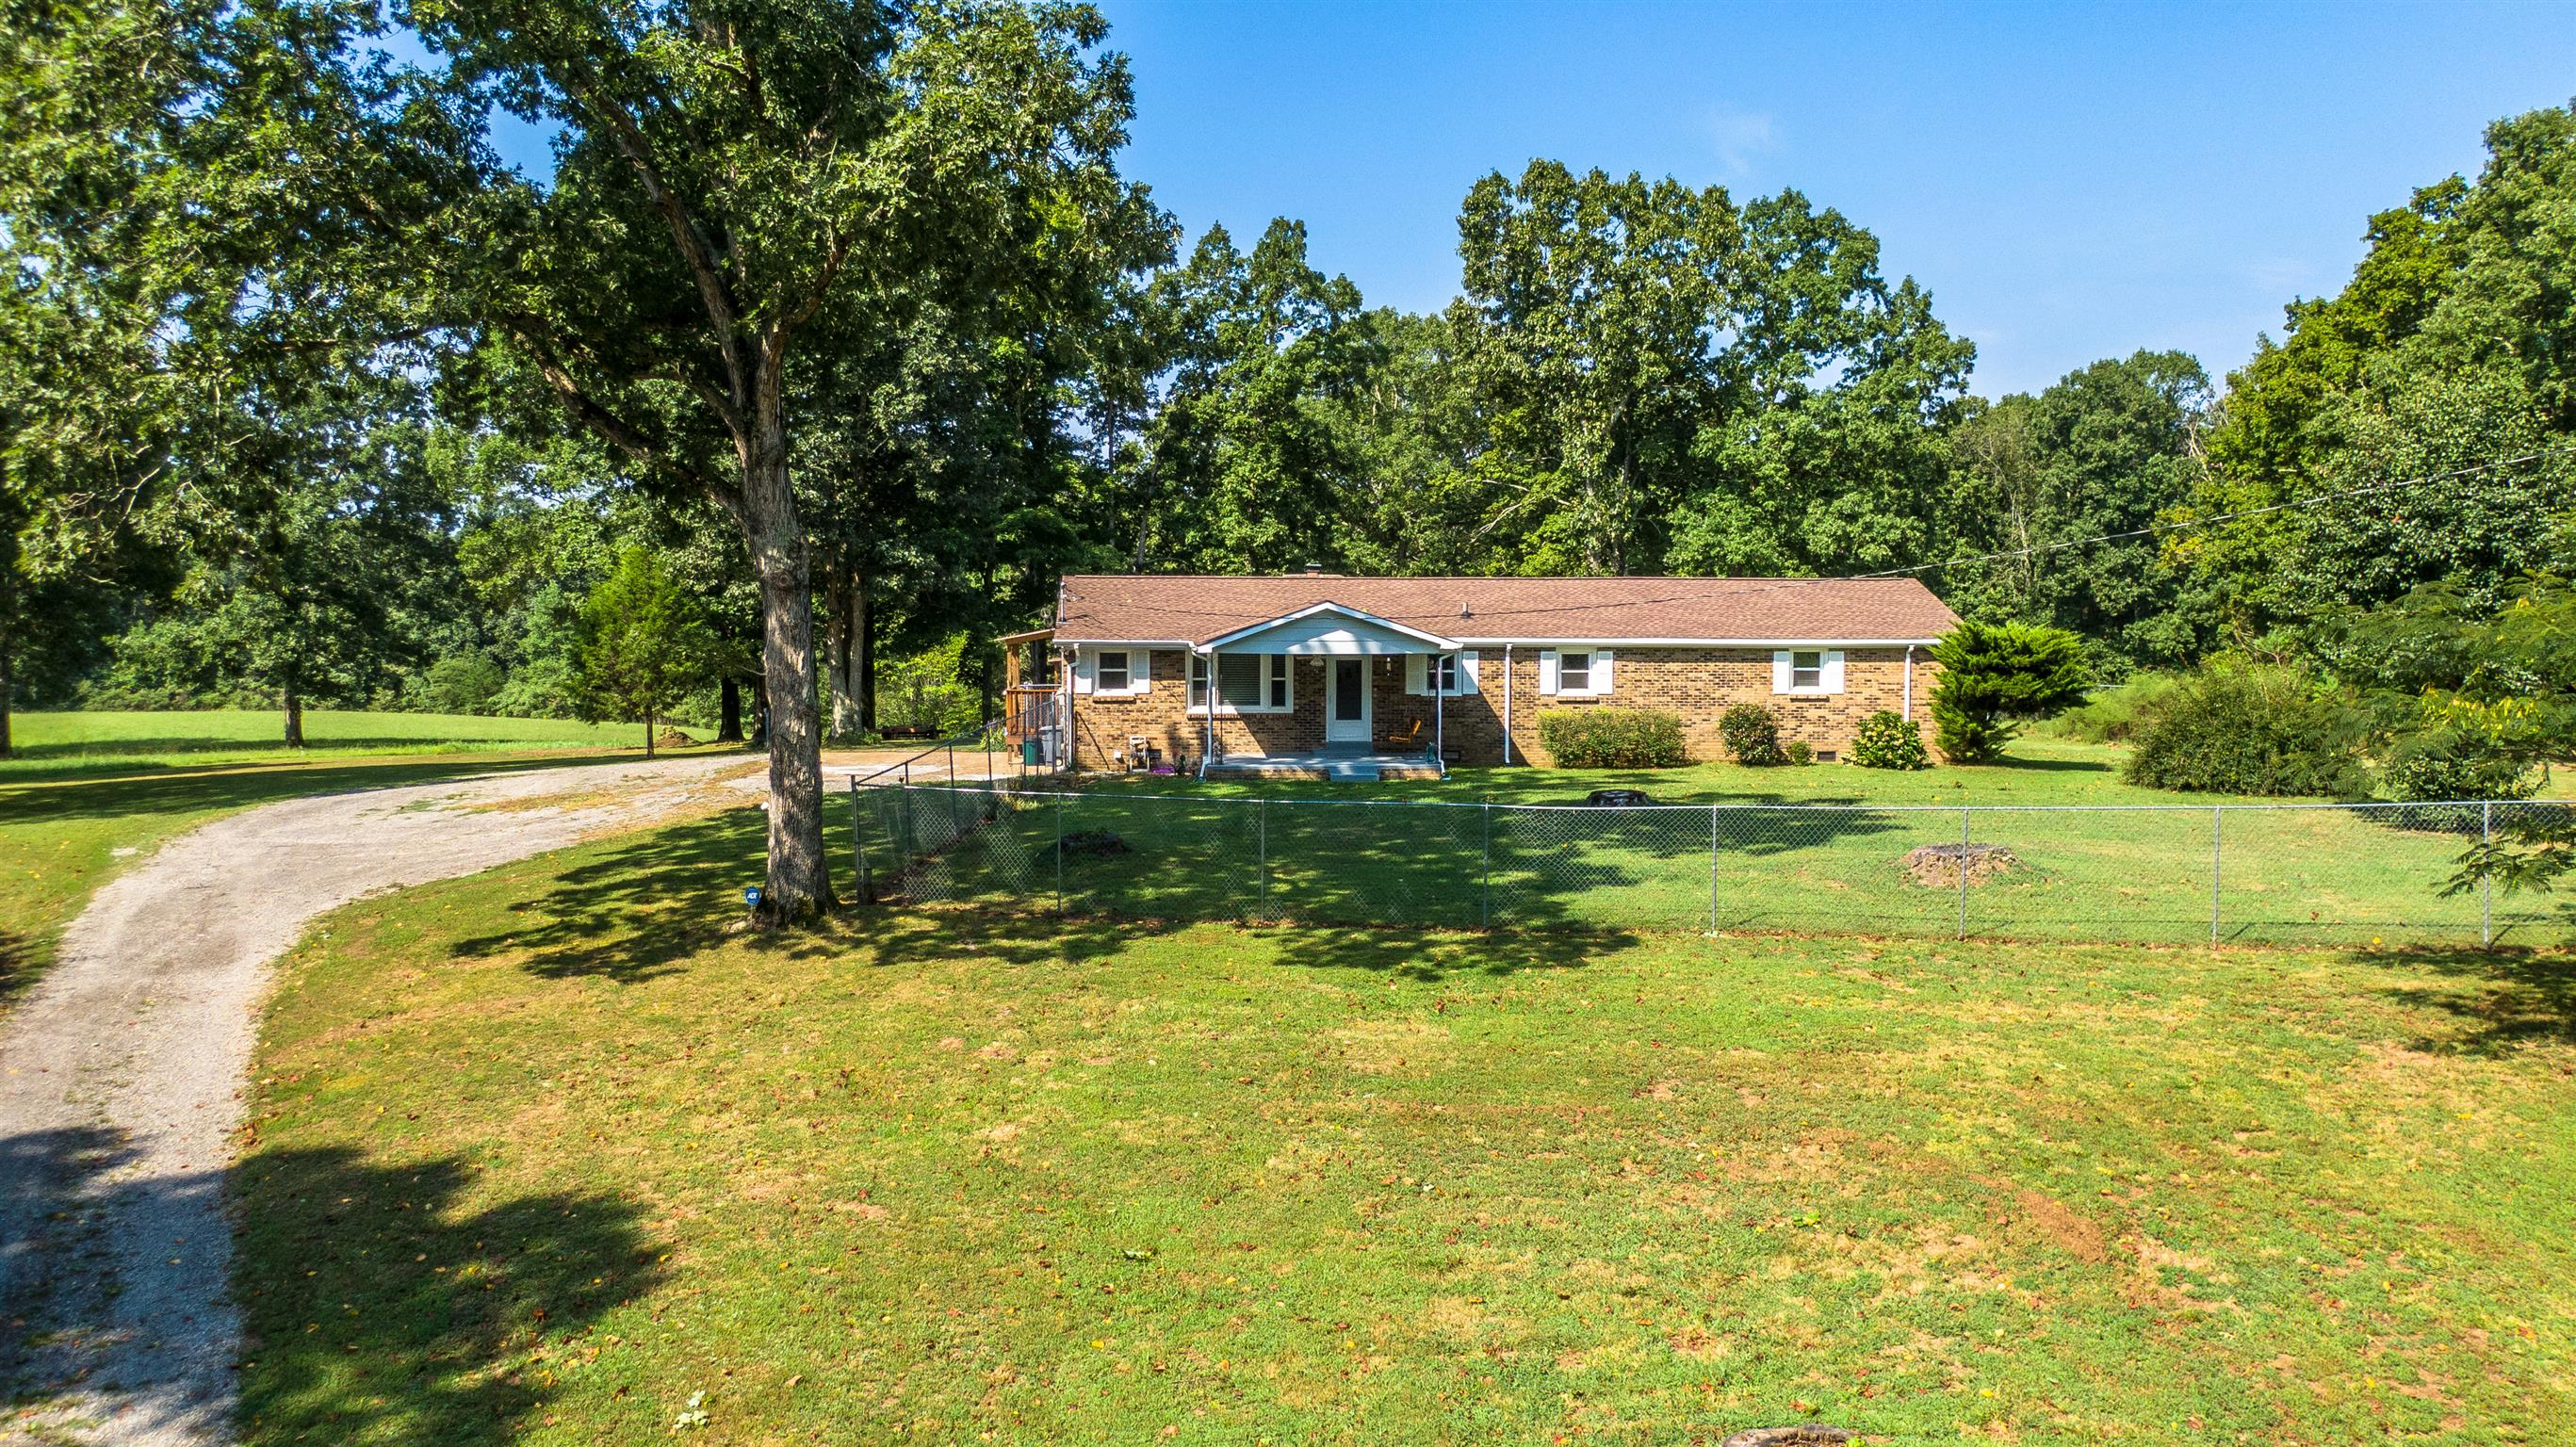 9496 Old Locust Creek Rd, Bon Aqua, TN 37025 - Bon Aqua, TN real estate listing